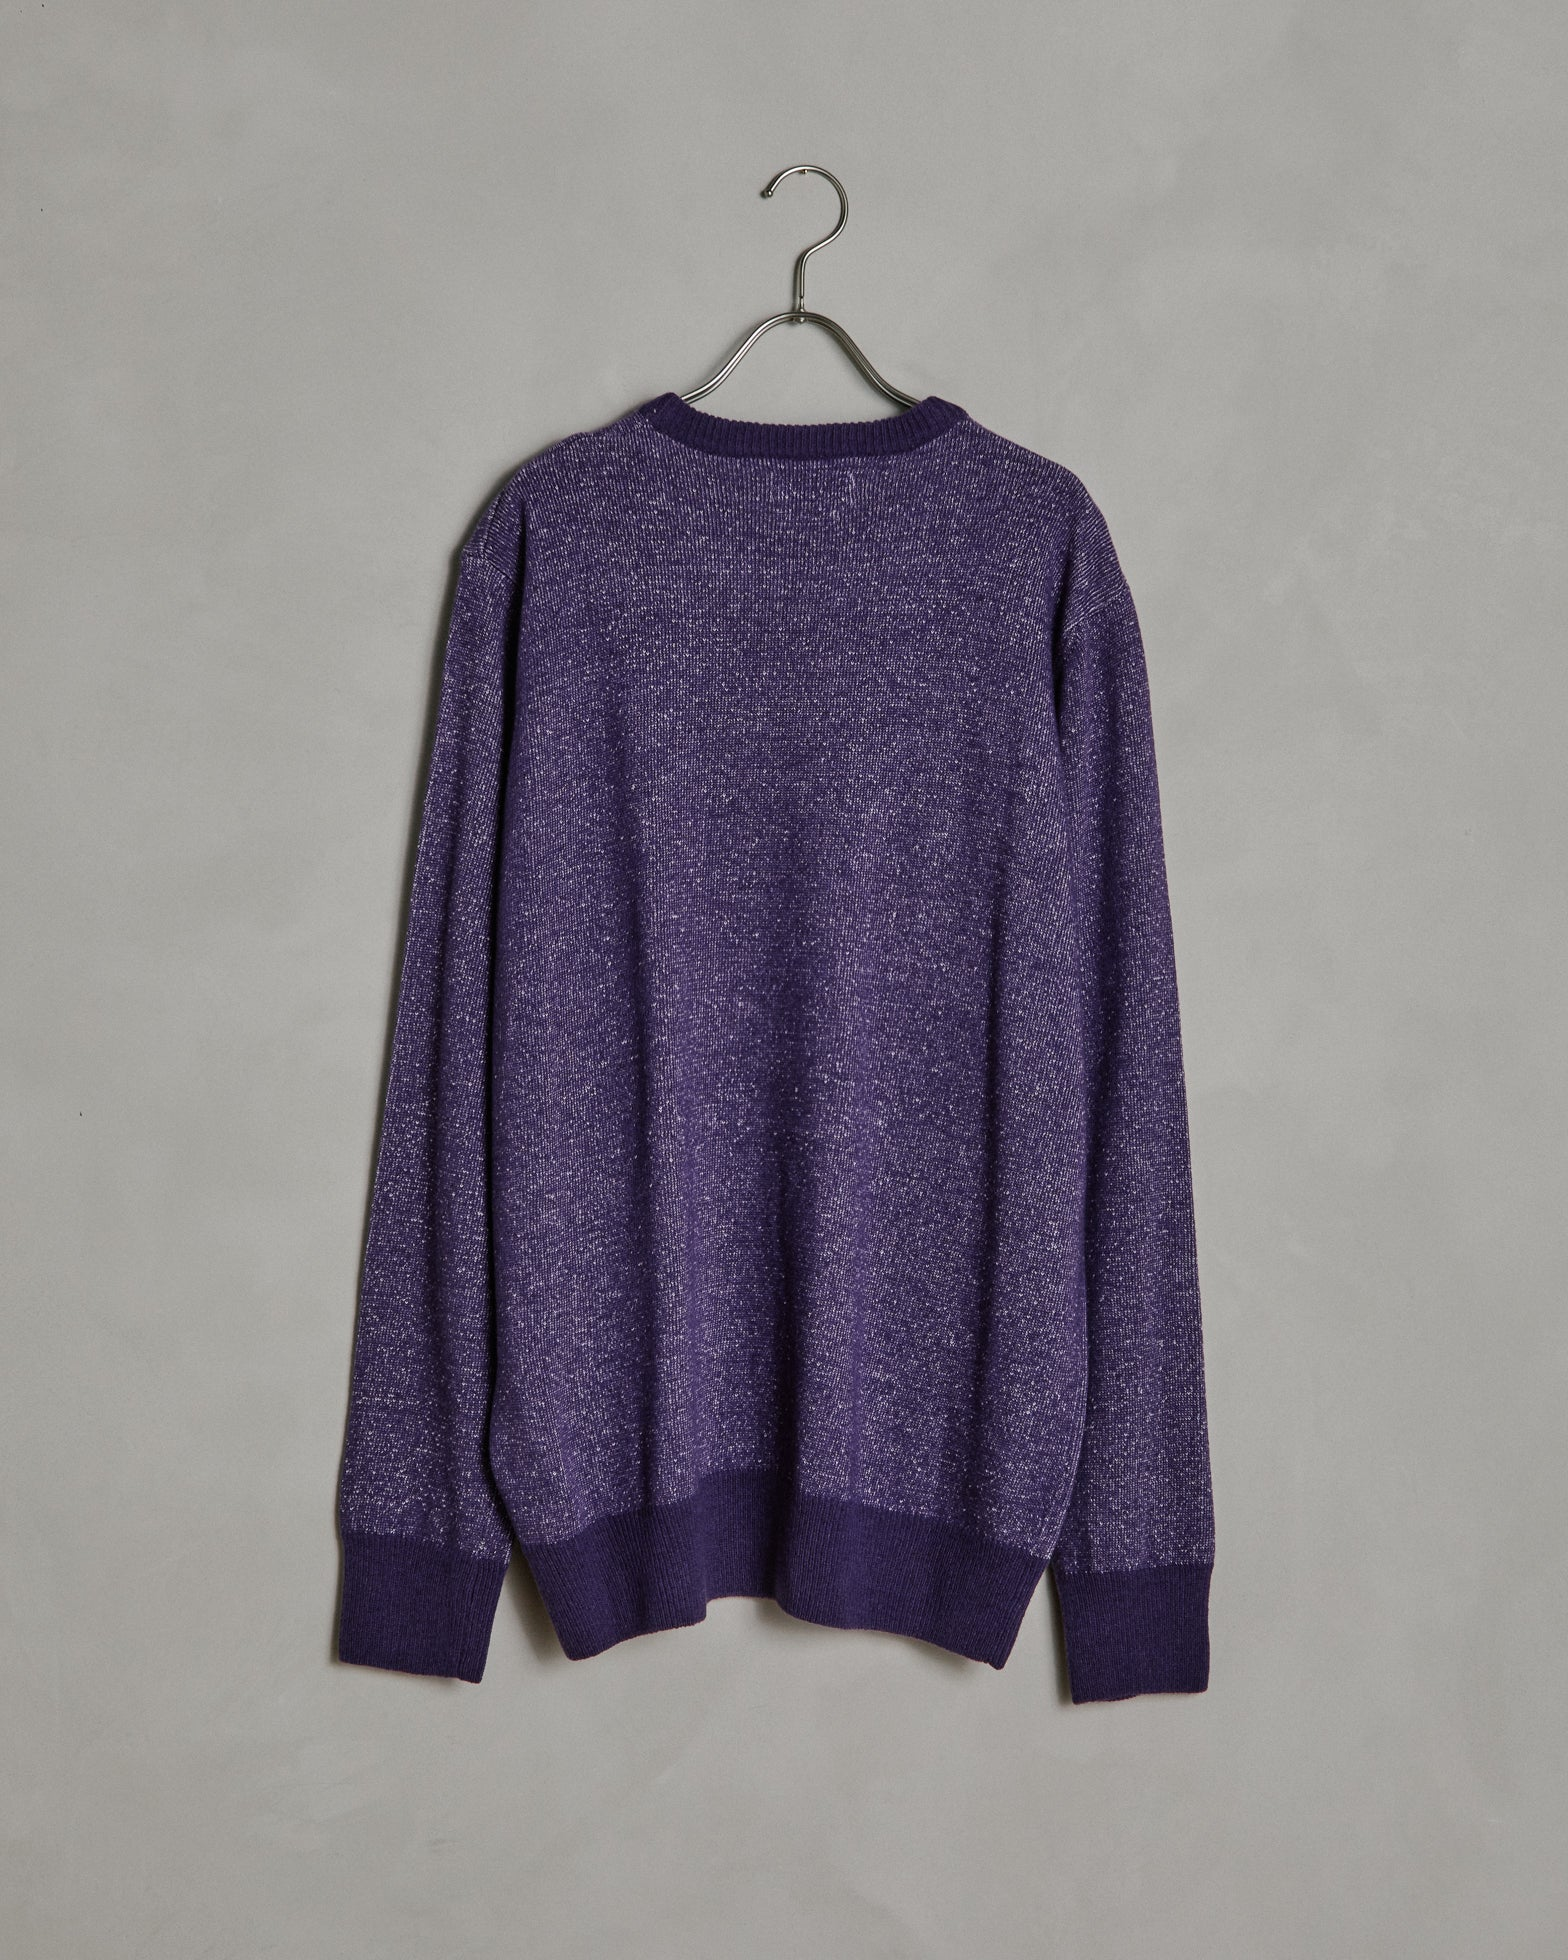 Cotton/Cashmere Crew Neck in Purple